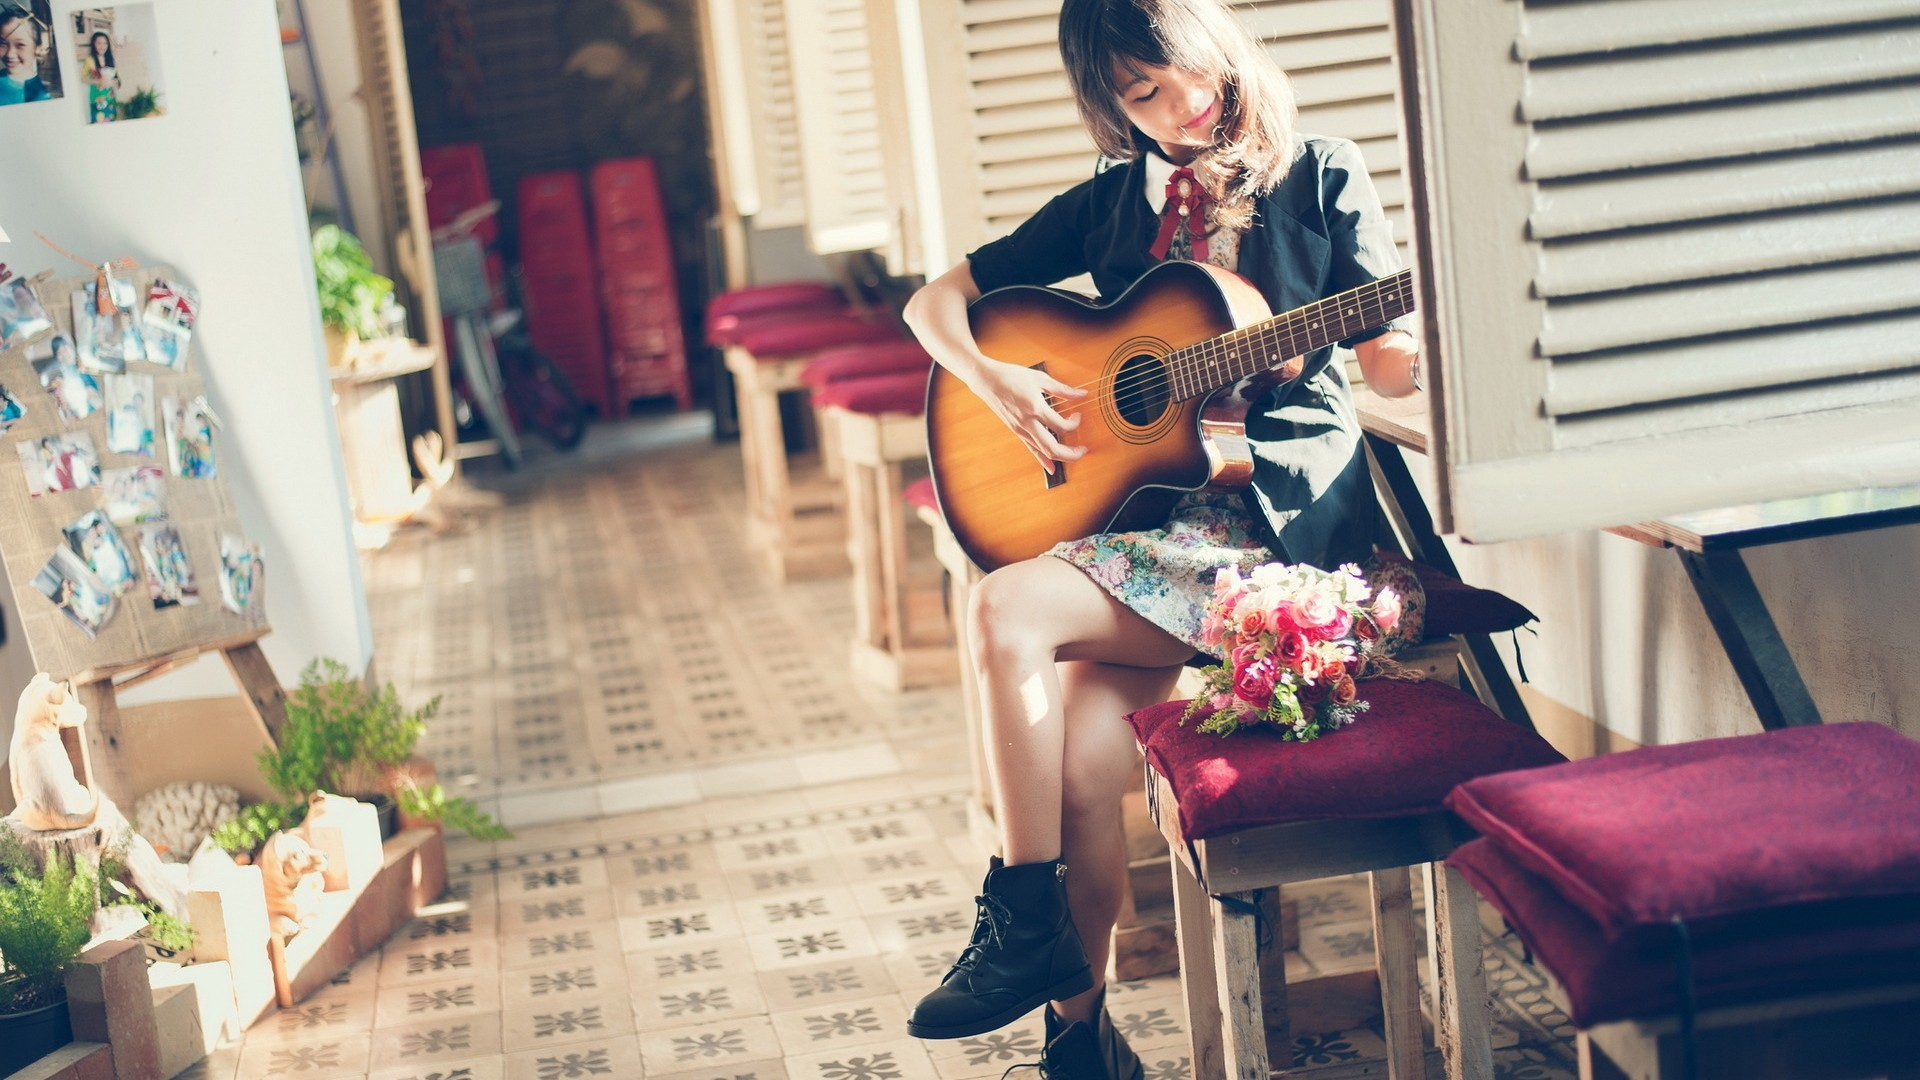 Res: 1920x1080, Women and Guitars   Girl with guitar wallpapers and images - wallpapers,  pictures, photos